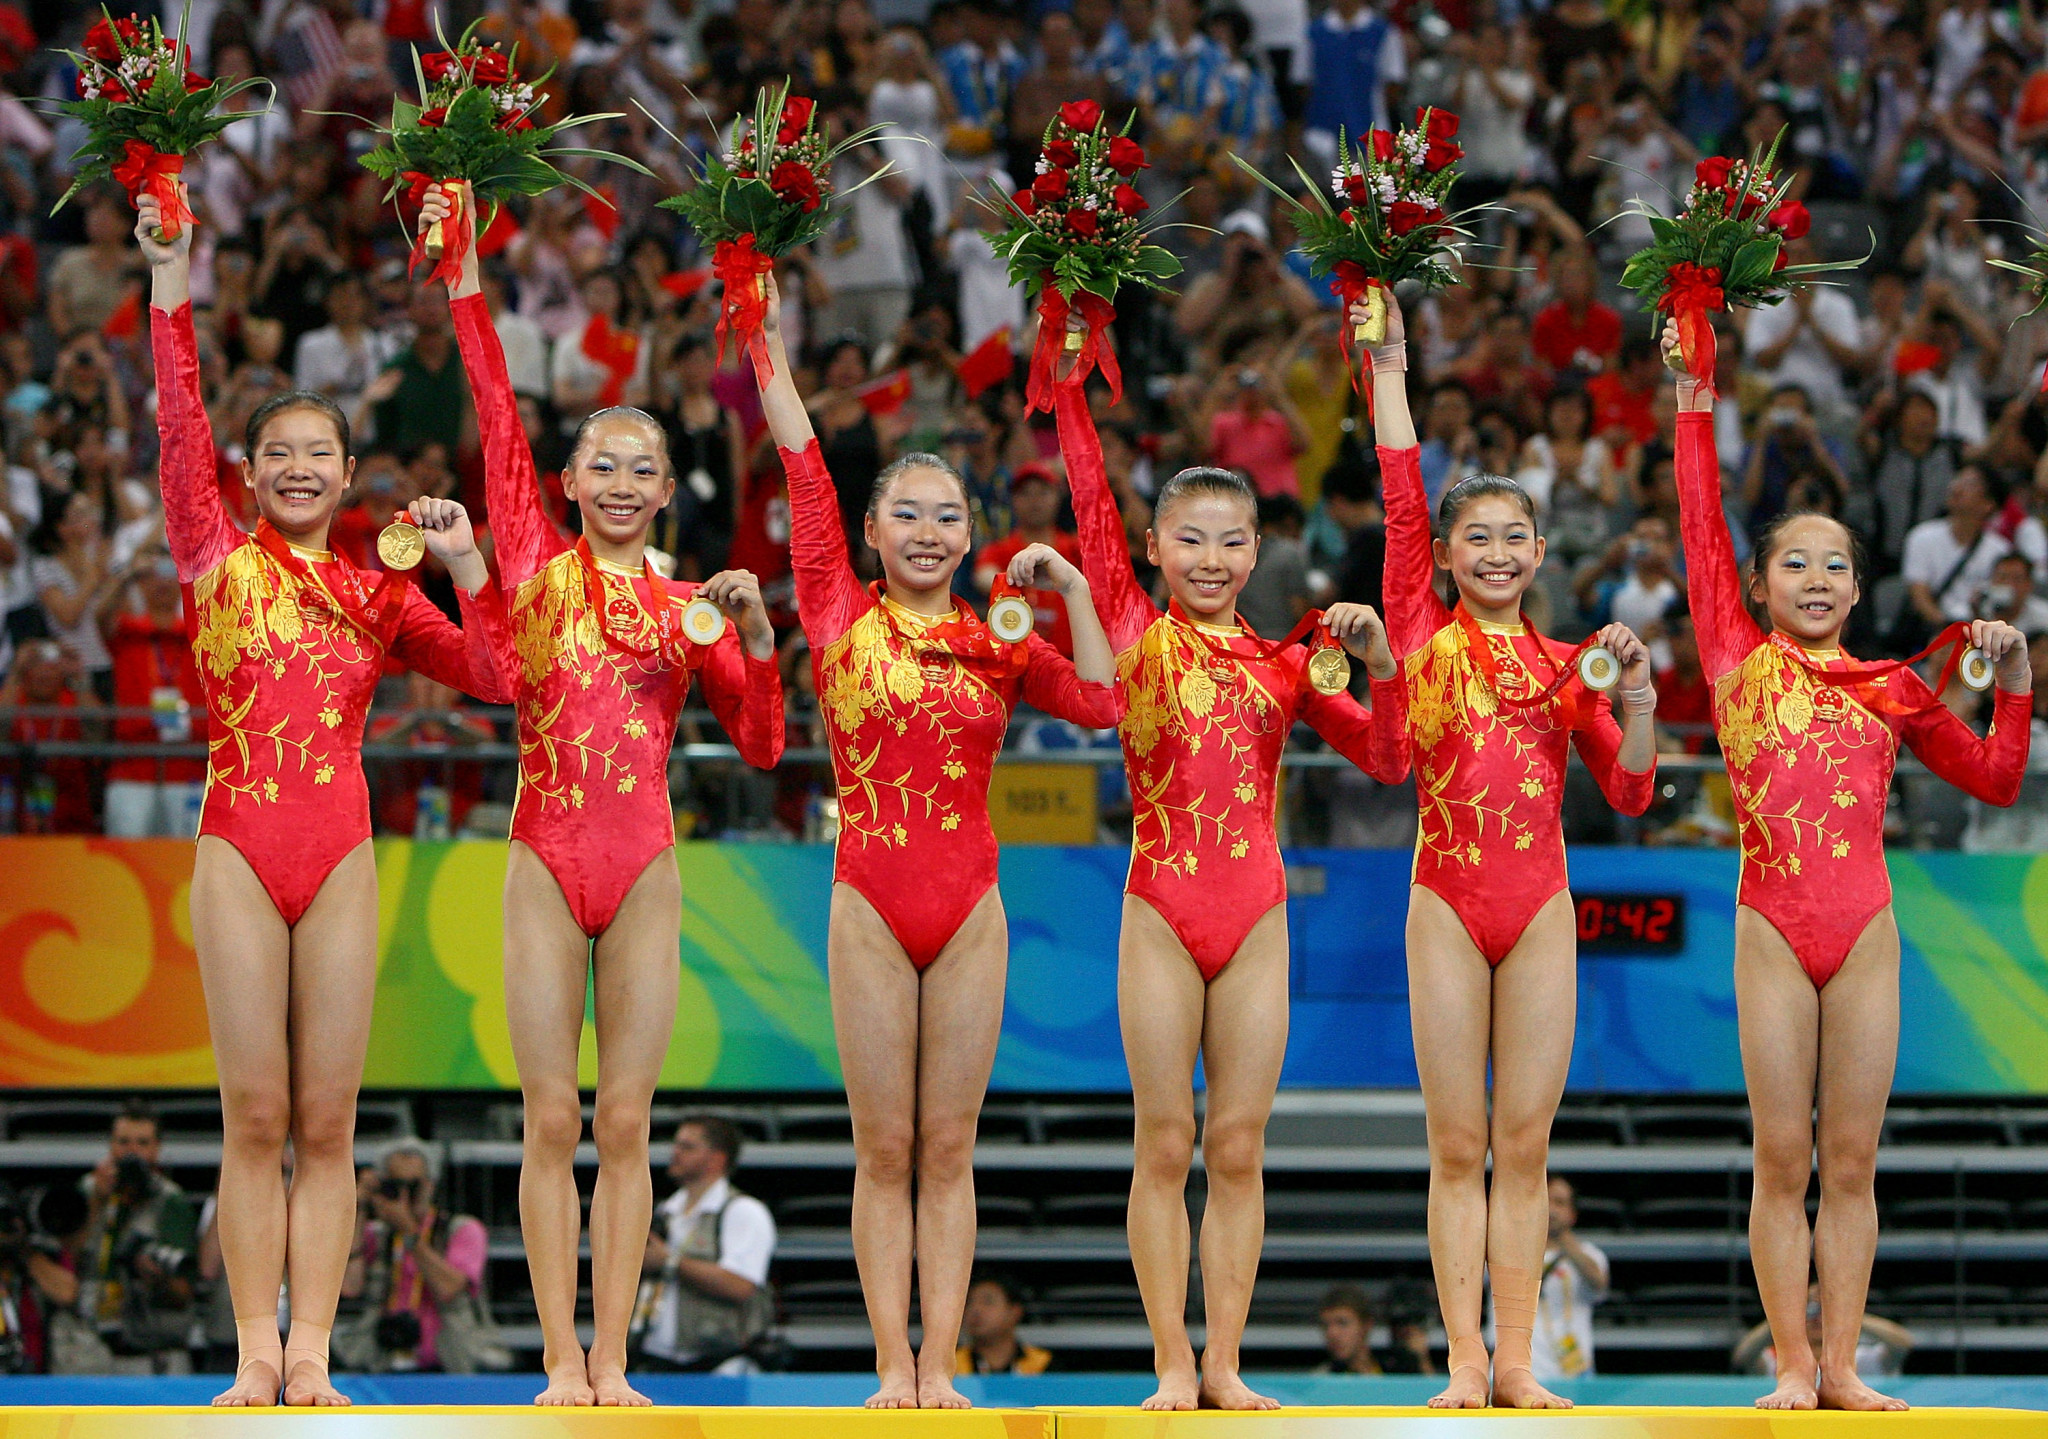 Lu Shanzhen coached China to the women's team gold at Beijing 2008, with their success overshadowed by claims some members were below the minimum age ©Getty Images